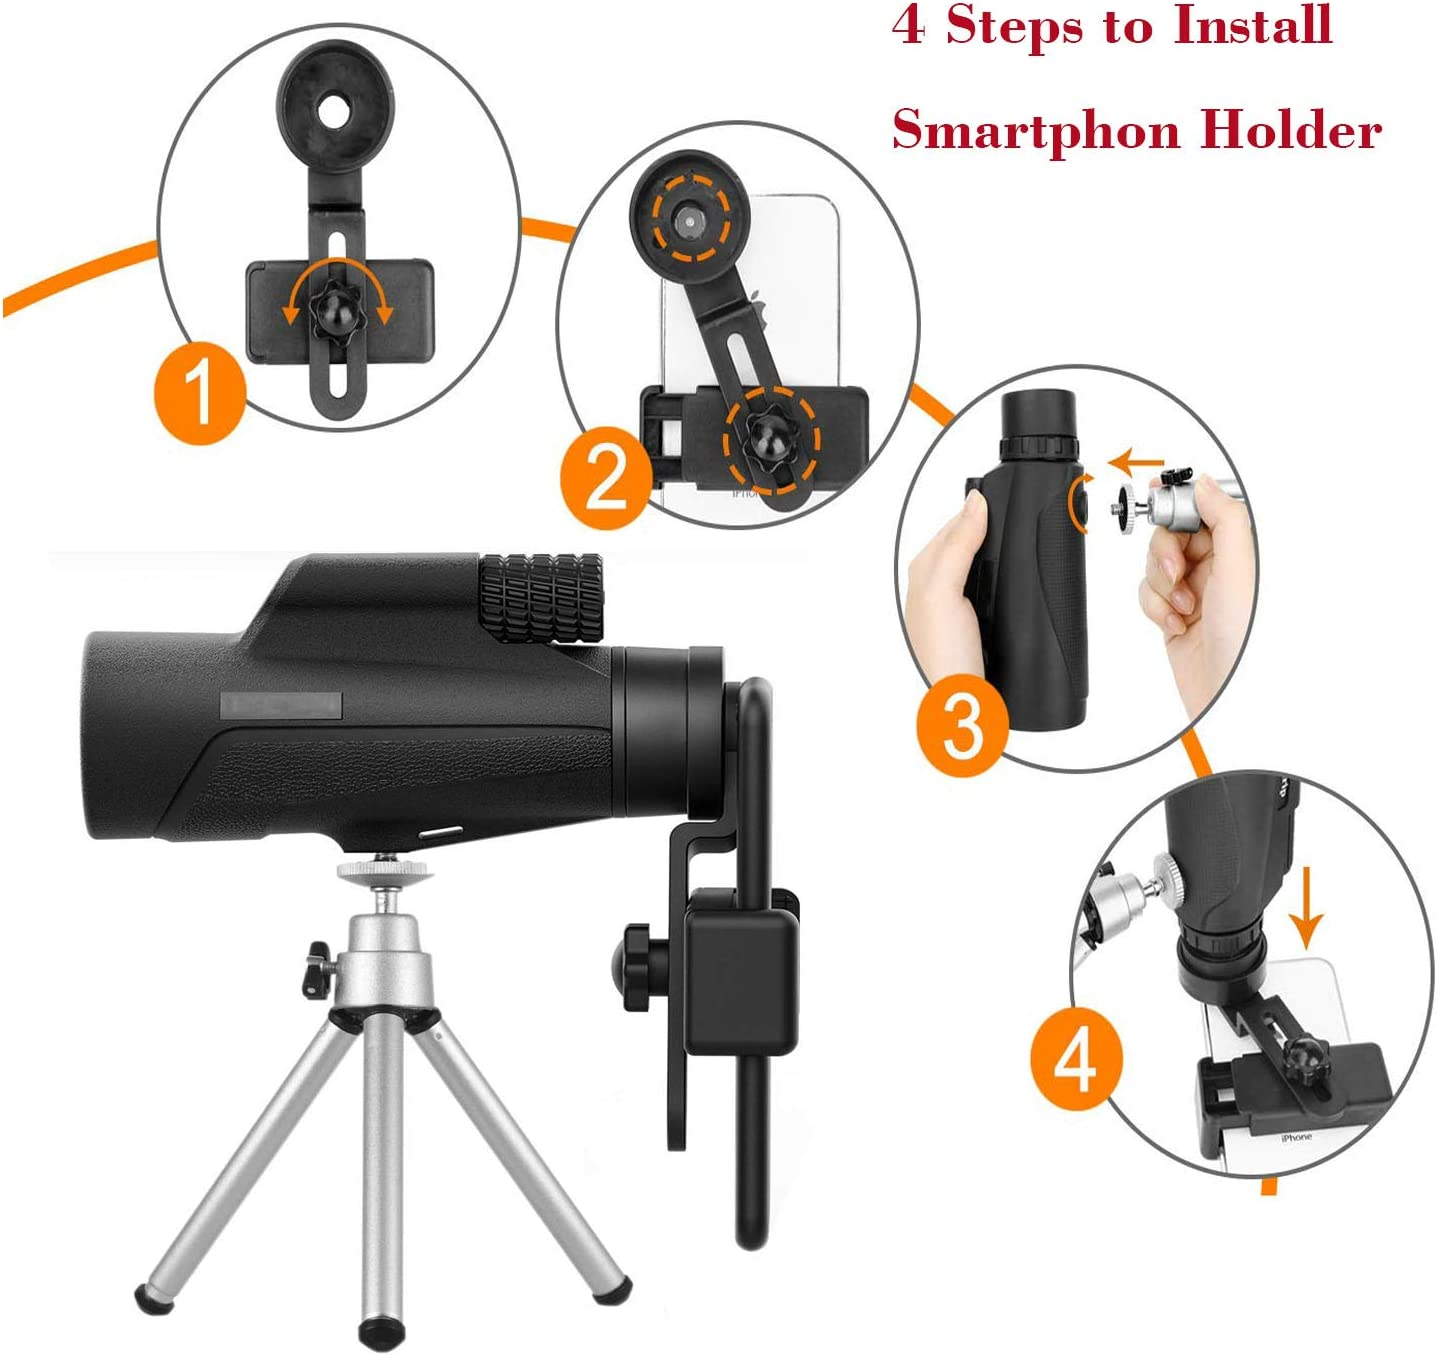 10 * 42 Travel Bird Watching SpinAmz Monocular Telescope,10X42 High Powered Monocular Scope with Phone Adapter and Tripod Camping Hunting Waterproof BAK4 Prism FMC Lens for Outdoor